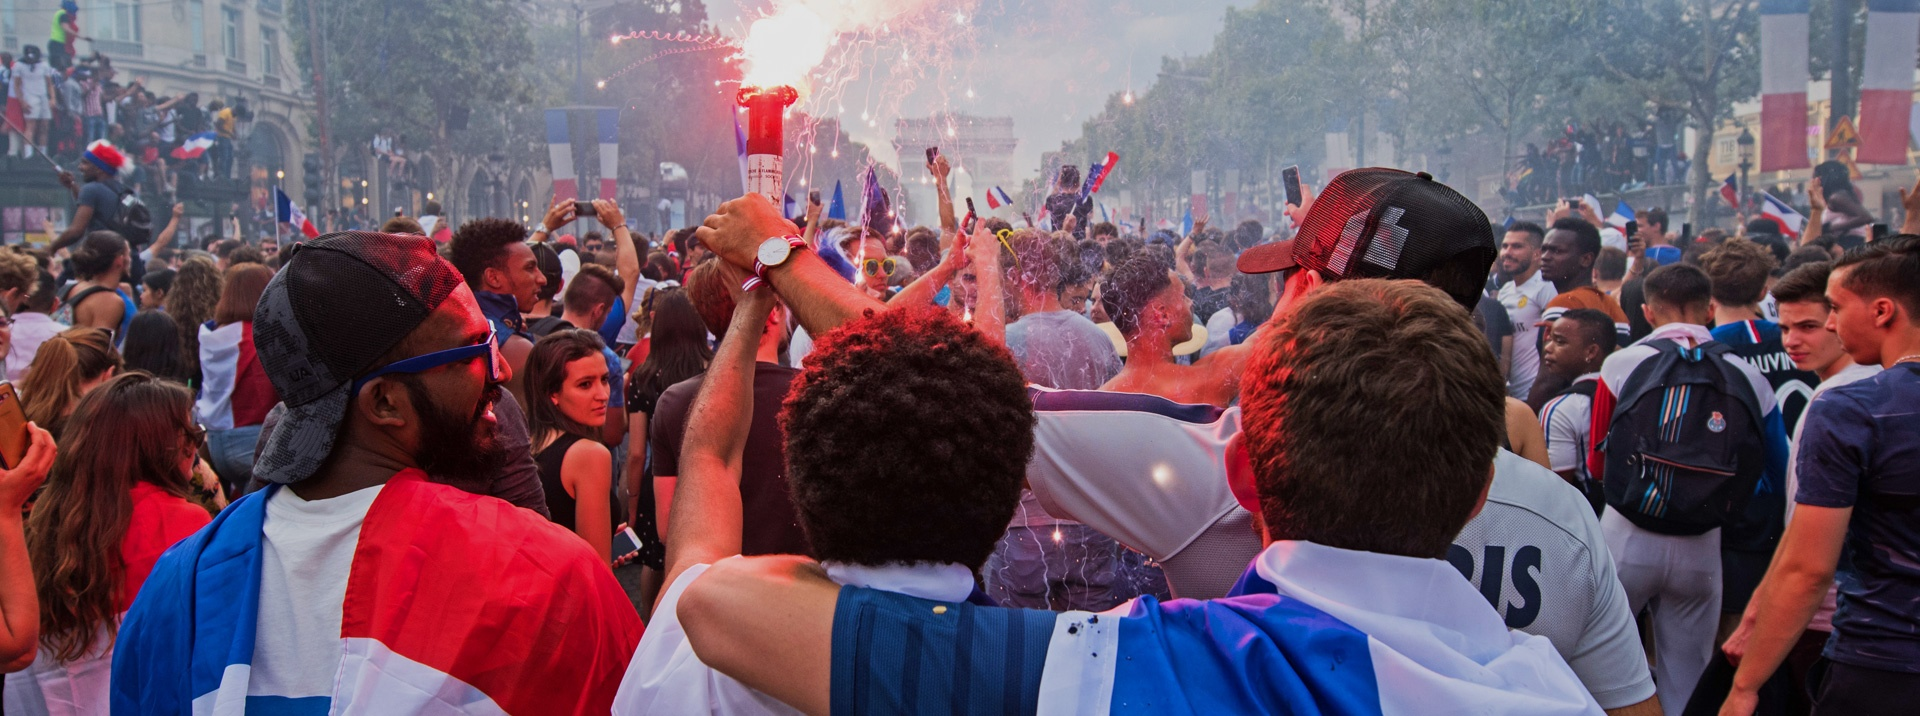 Paris interns celebrating the world cup